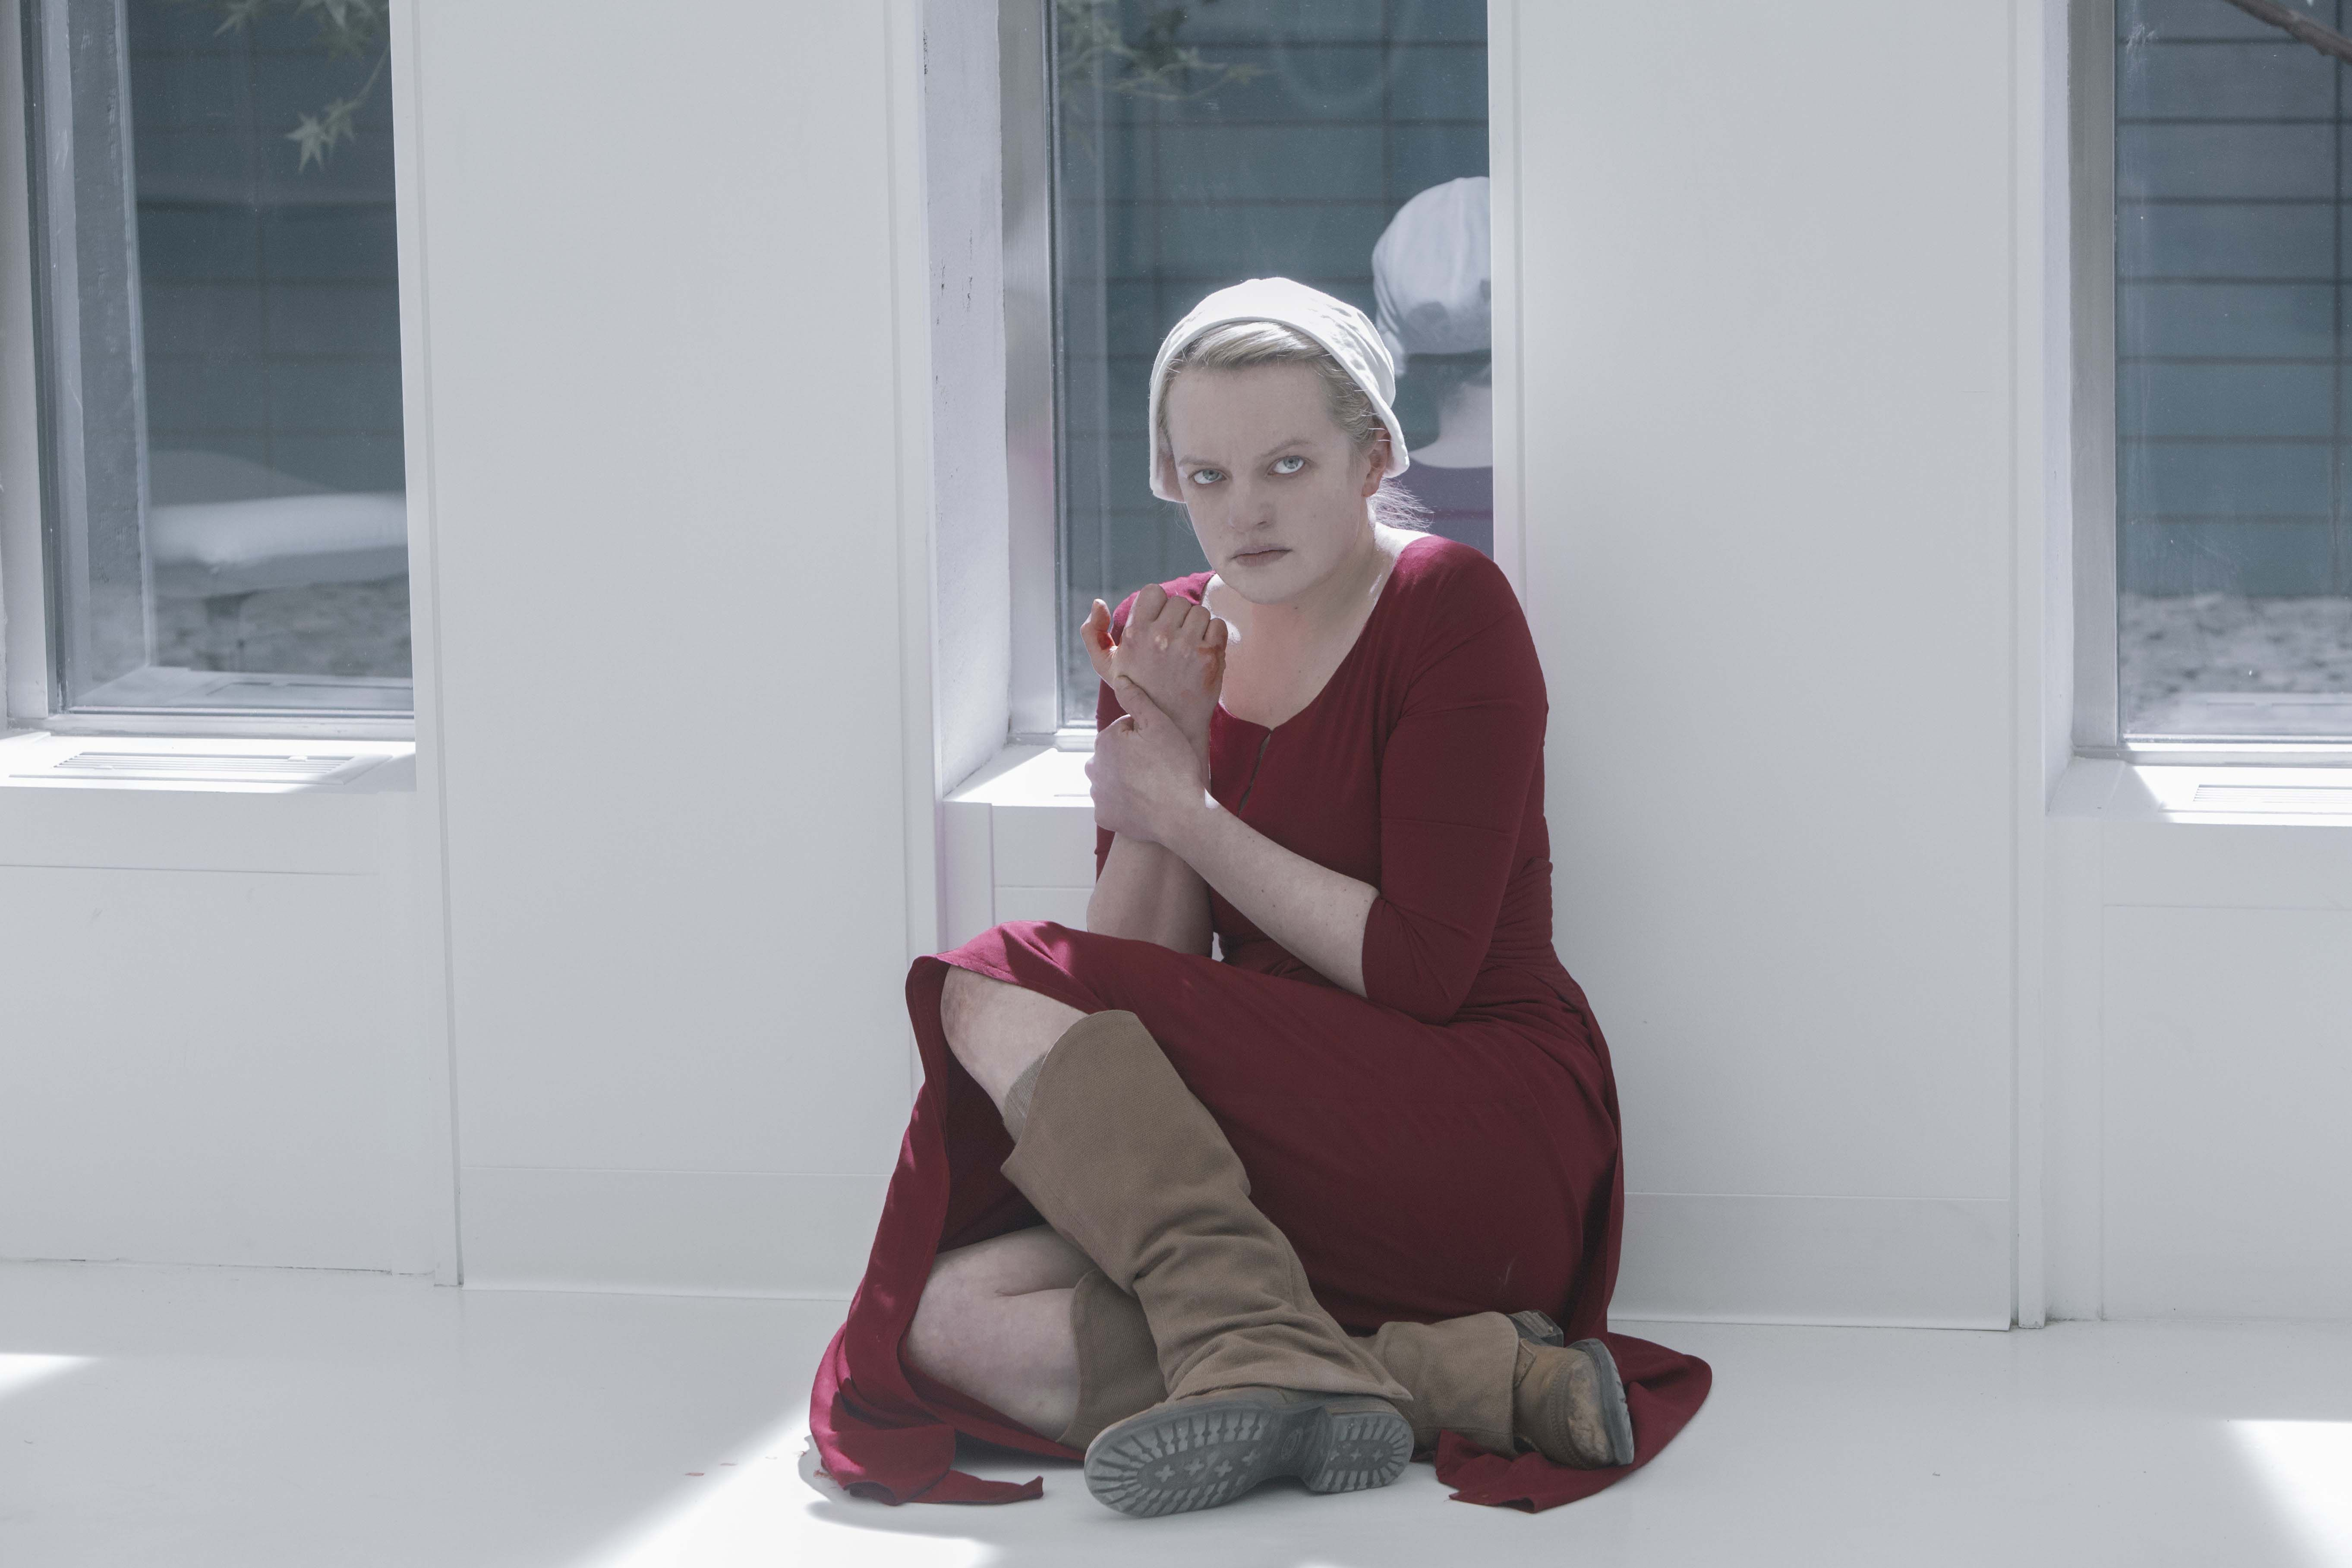 'The Handmaid's Tale' Season 3, Episode 9 Recap: They're Trying to Torture Us